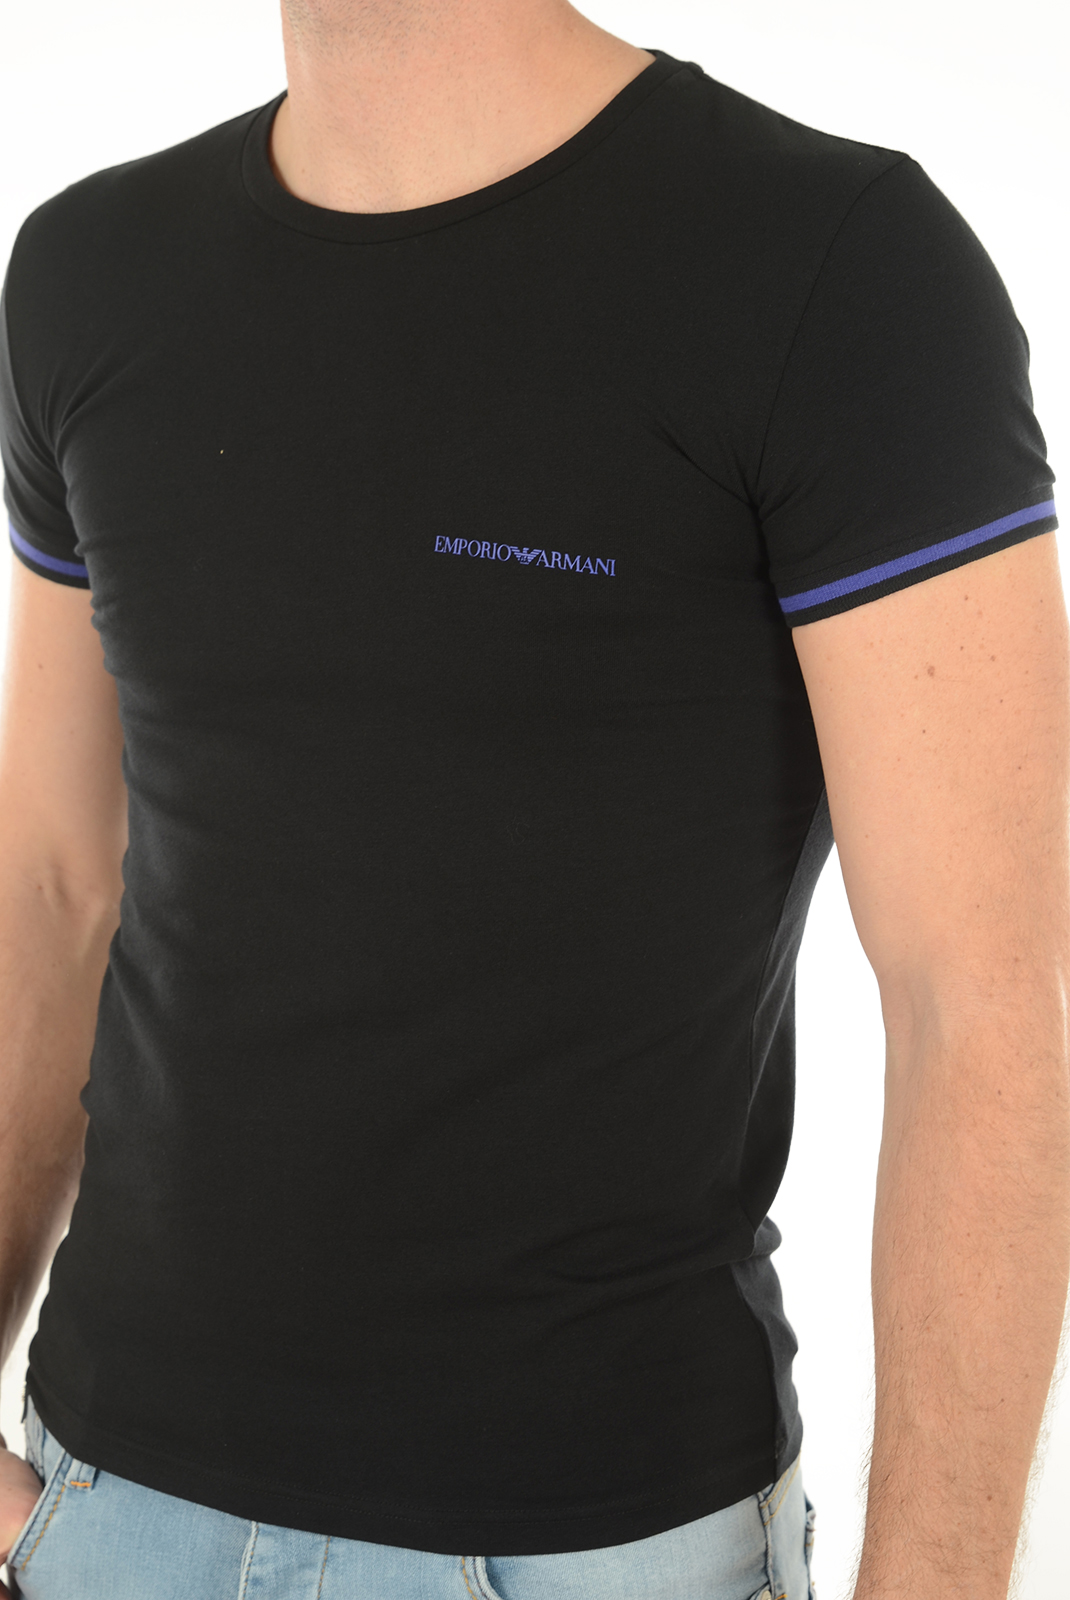 EMPORIO ARMANI TEE-SHIRT MANCHES COURTES BICOLORE STRETCH 111035 6A525